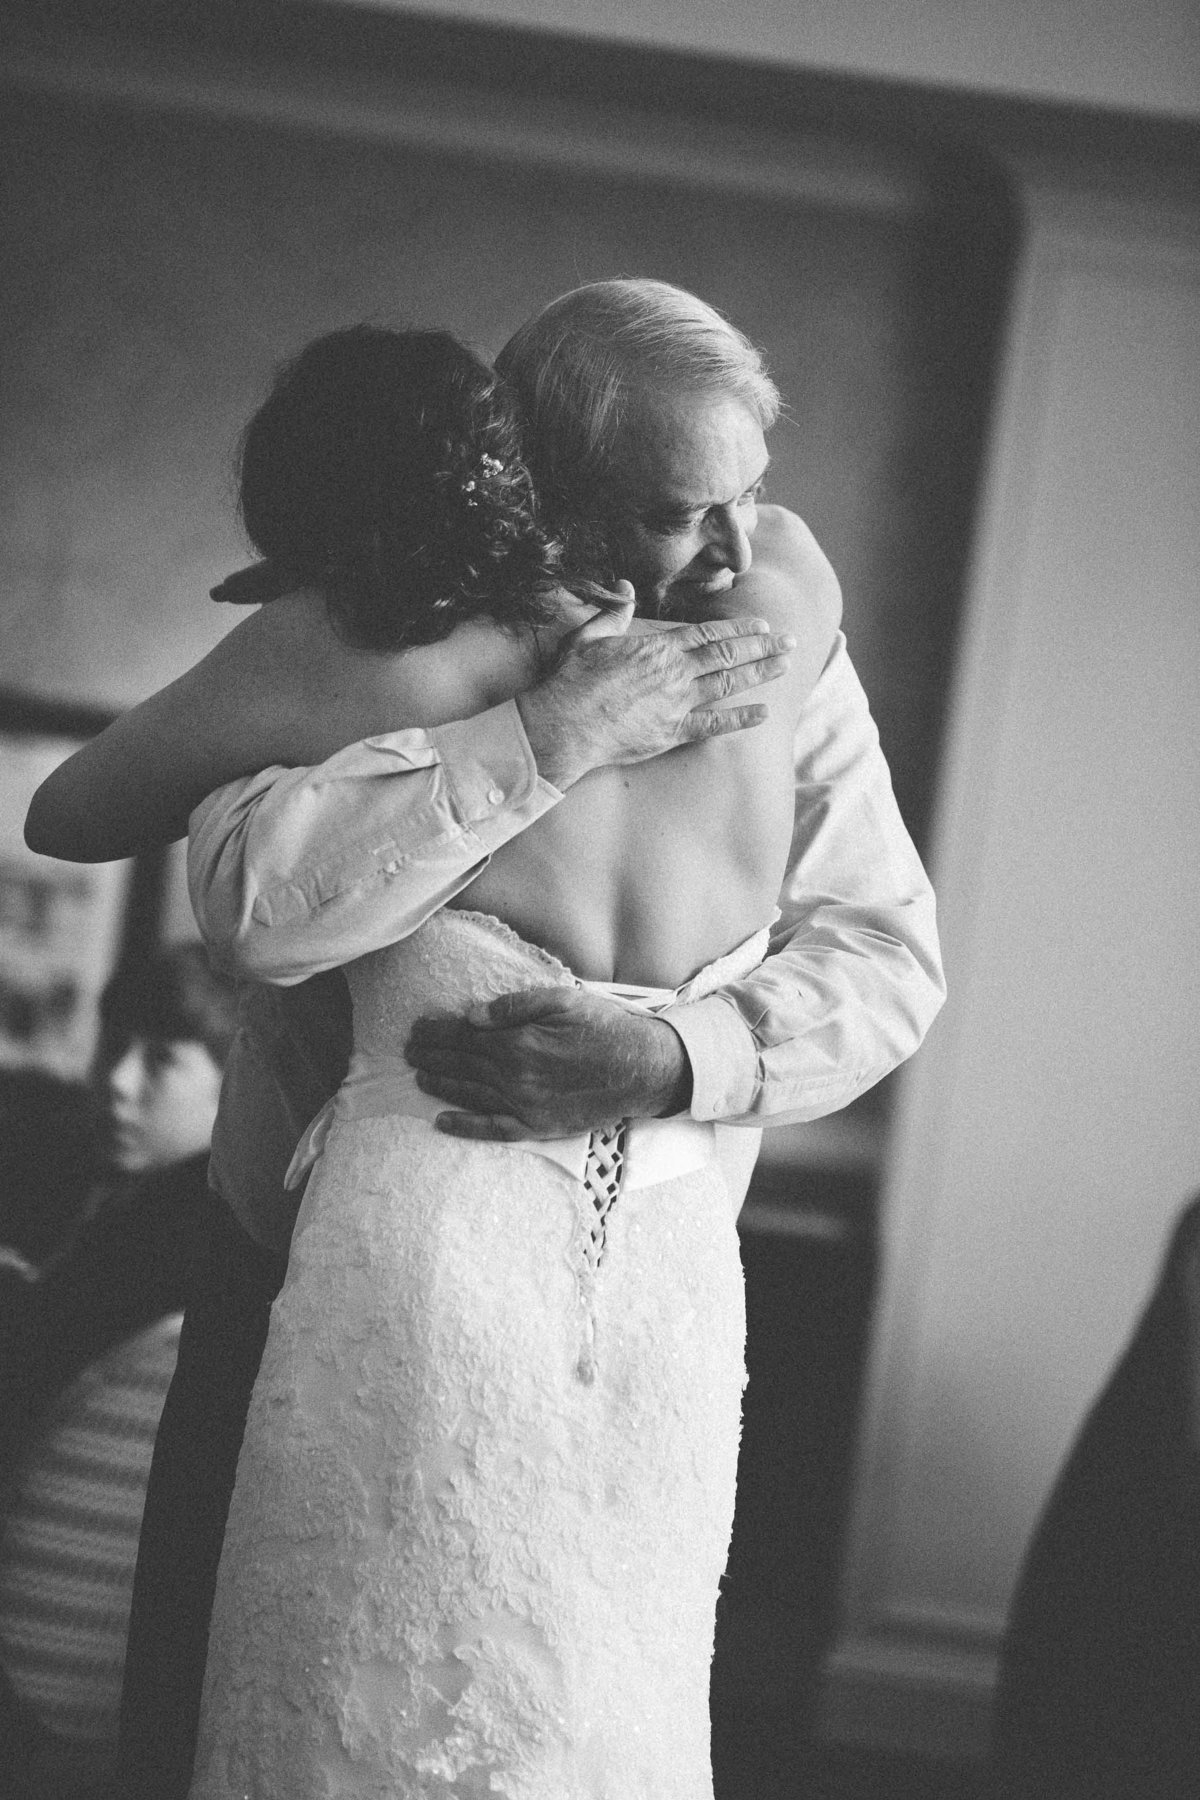 A man hugging a woman in a wedding dress.